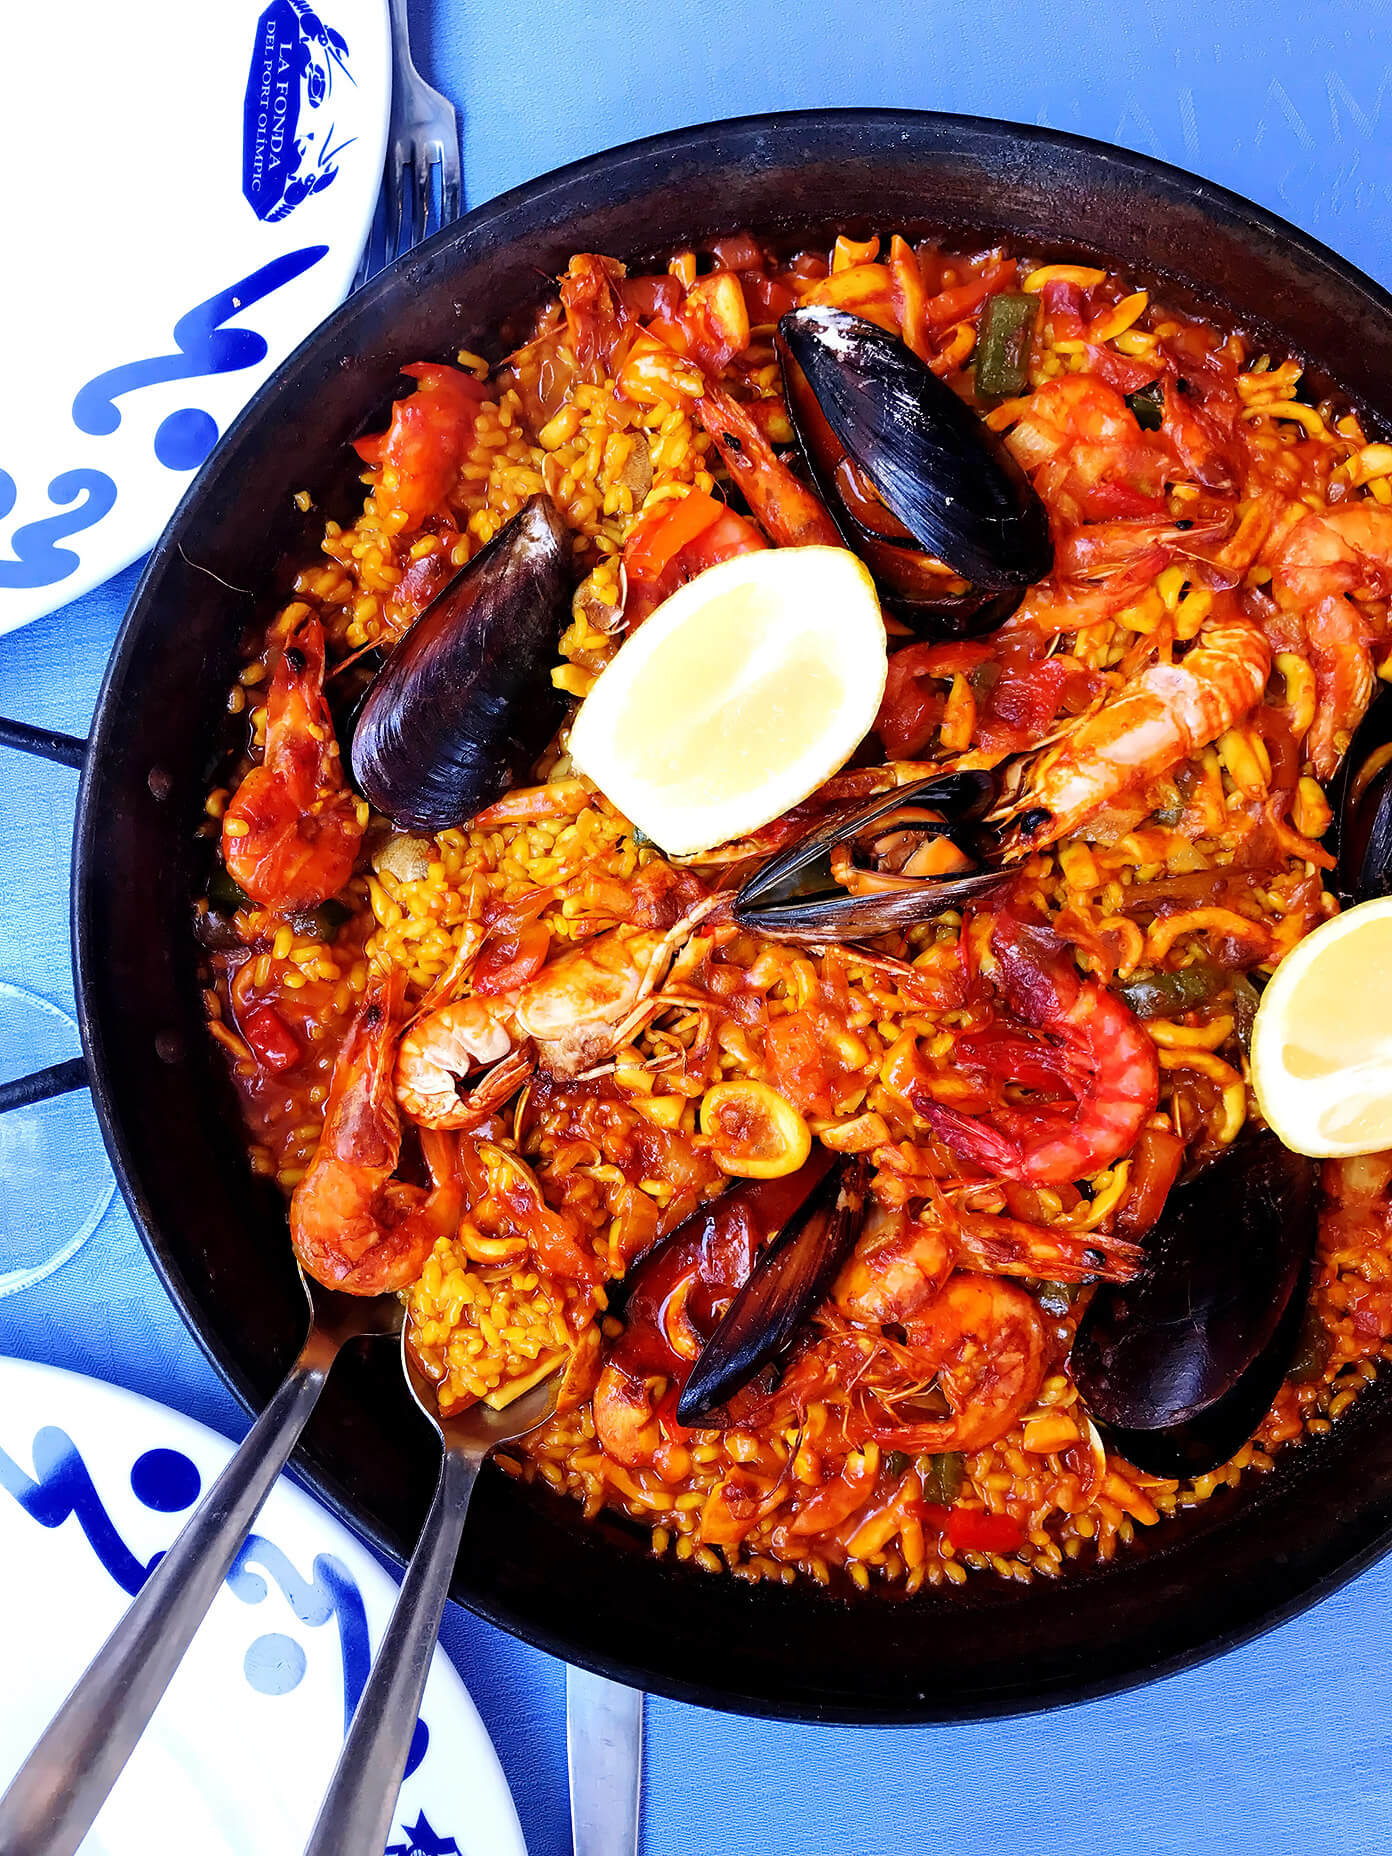 Salamanca paella by the beach | Gimme Some Barcelona Travel Guide